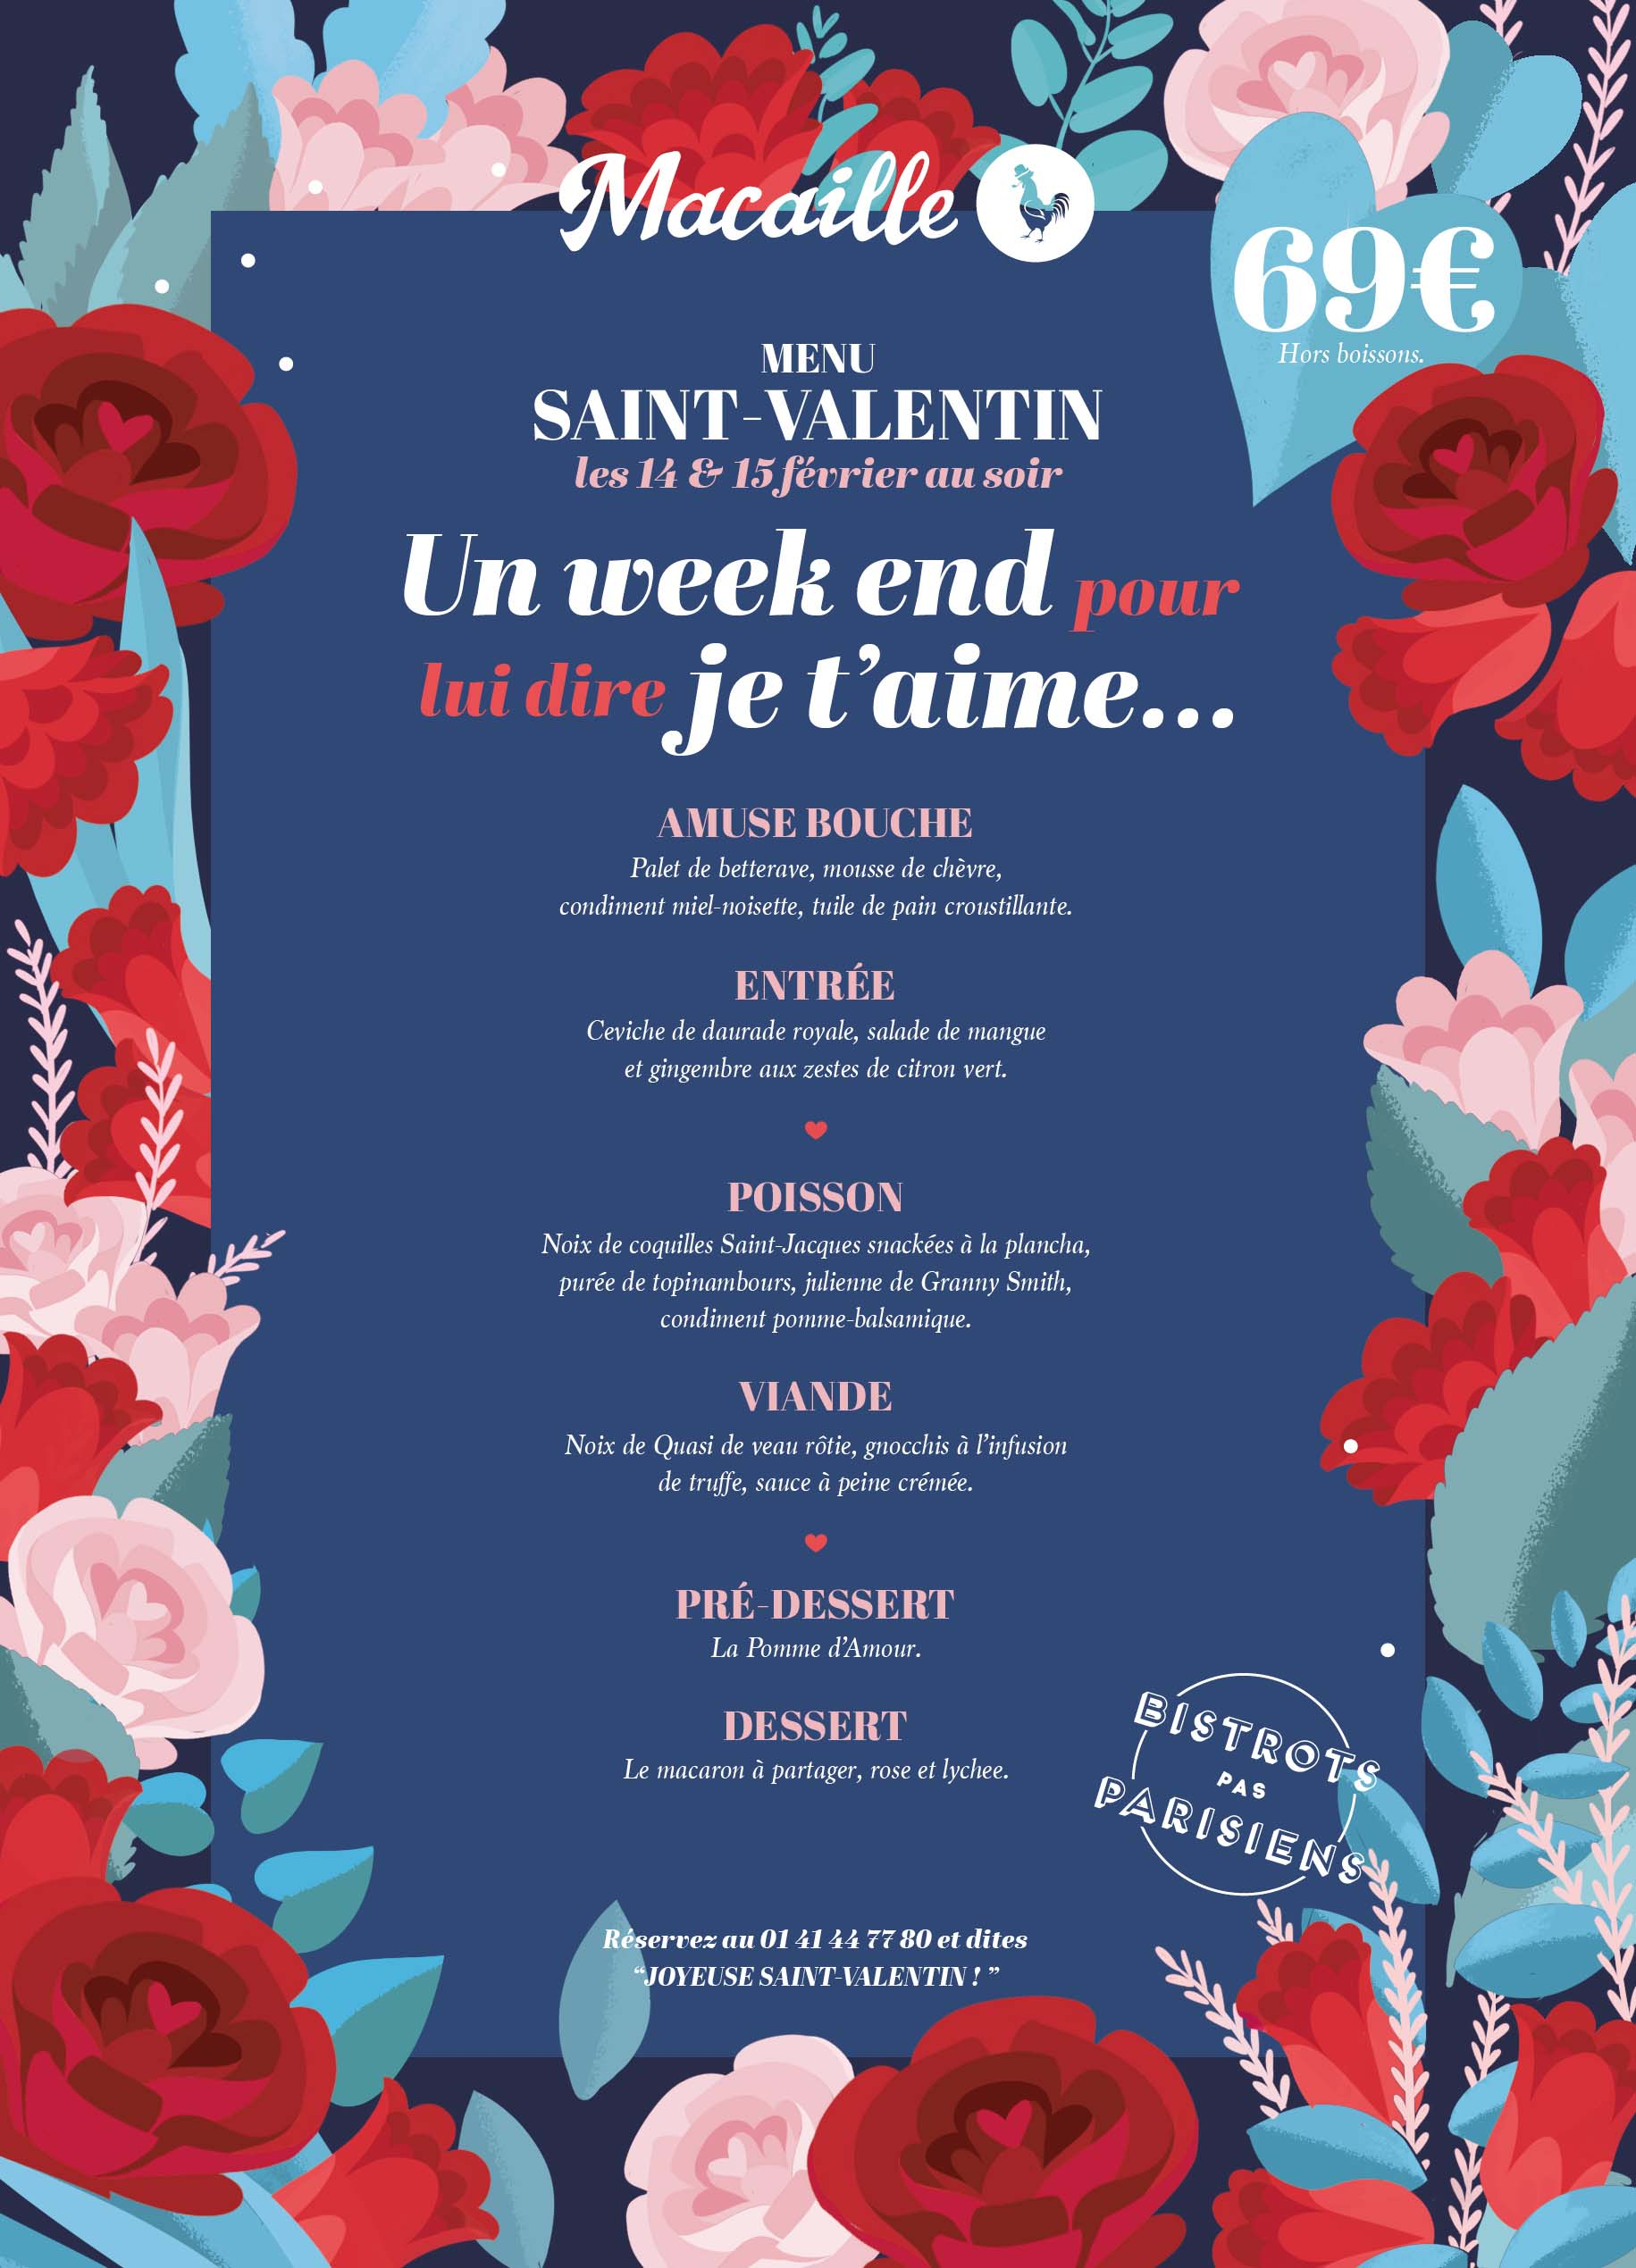 BPP-saintValentin-menu-digital-Macaille